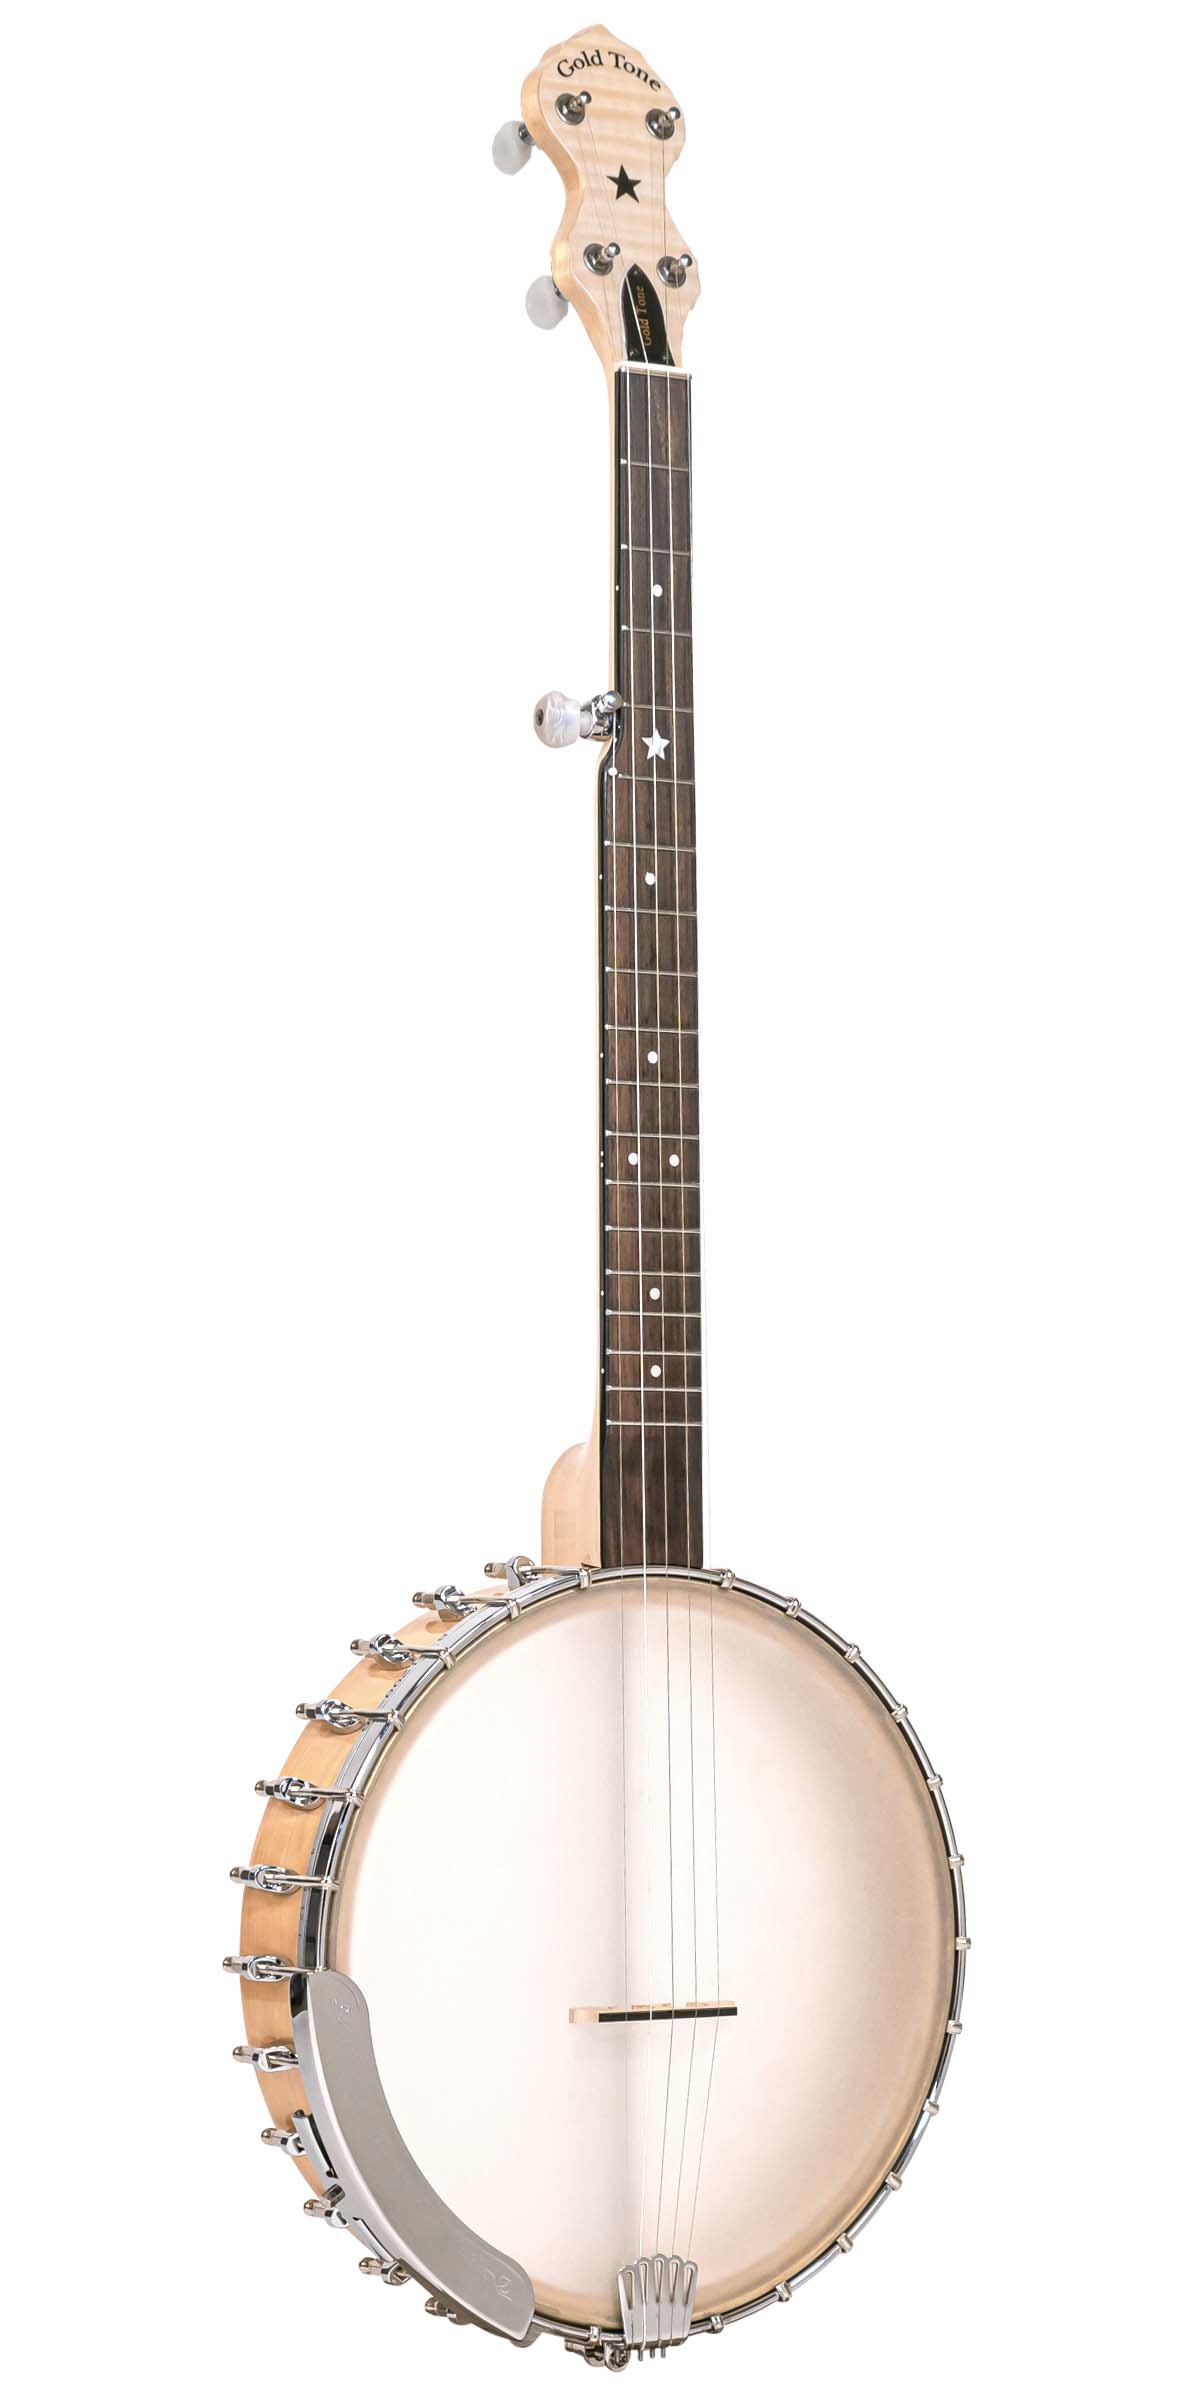 CC-Carlin12: Cripple Creek Bob Carlin Banjo